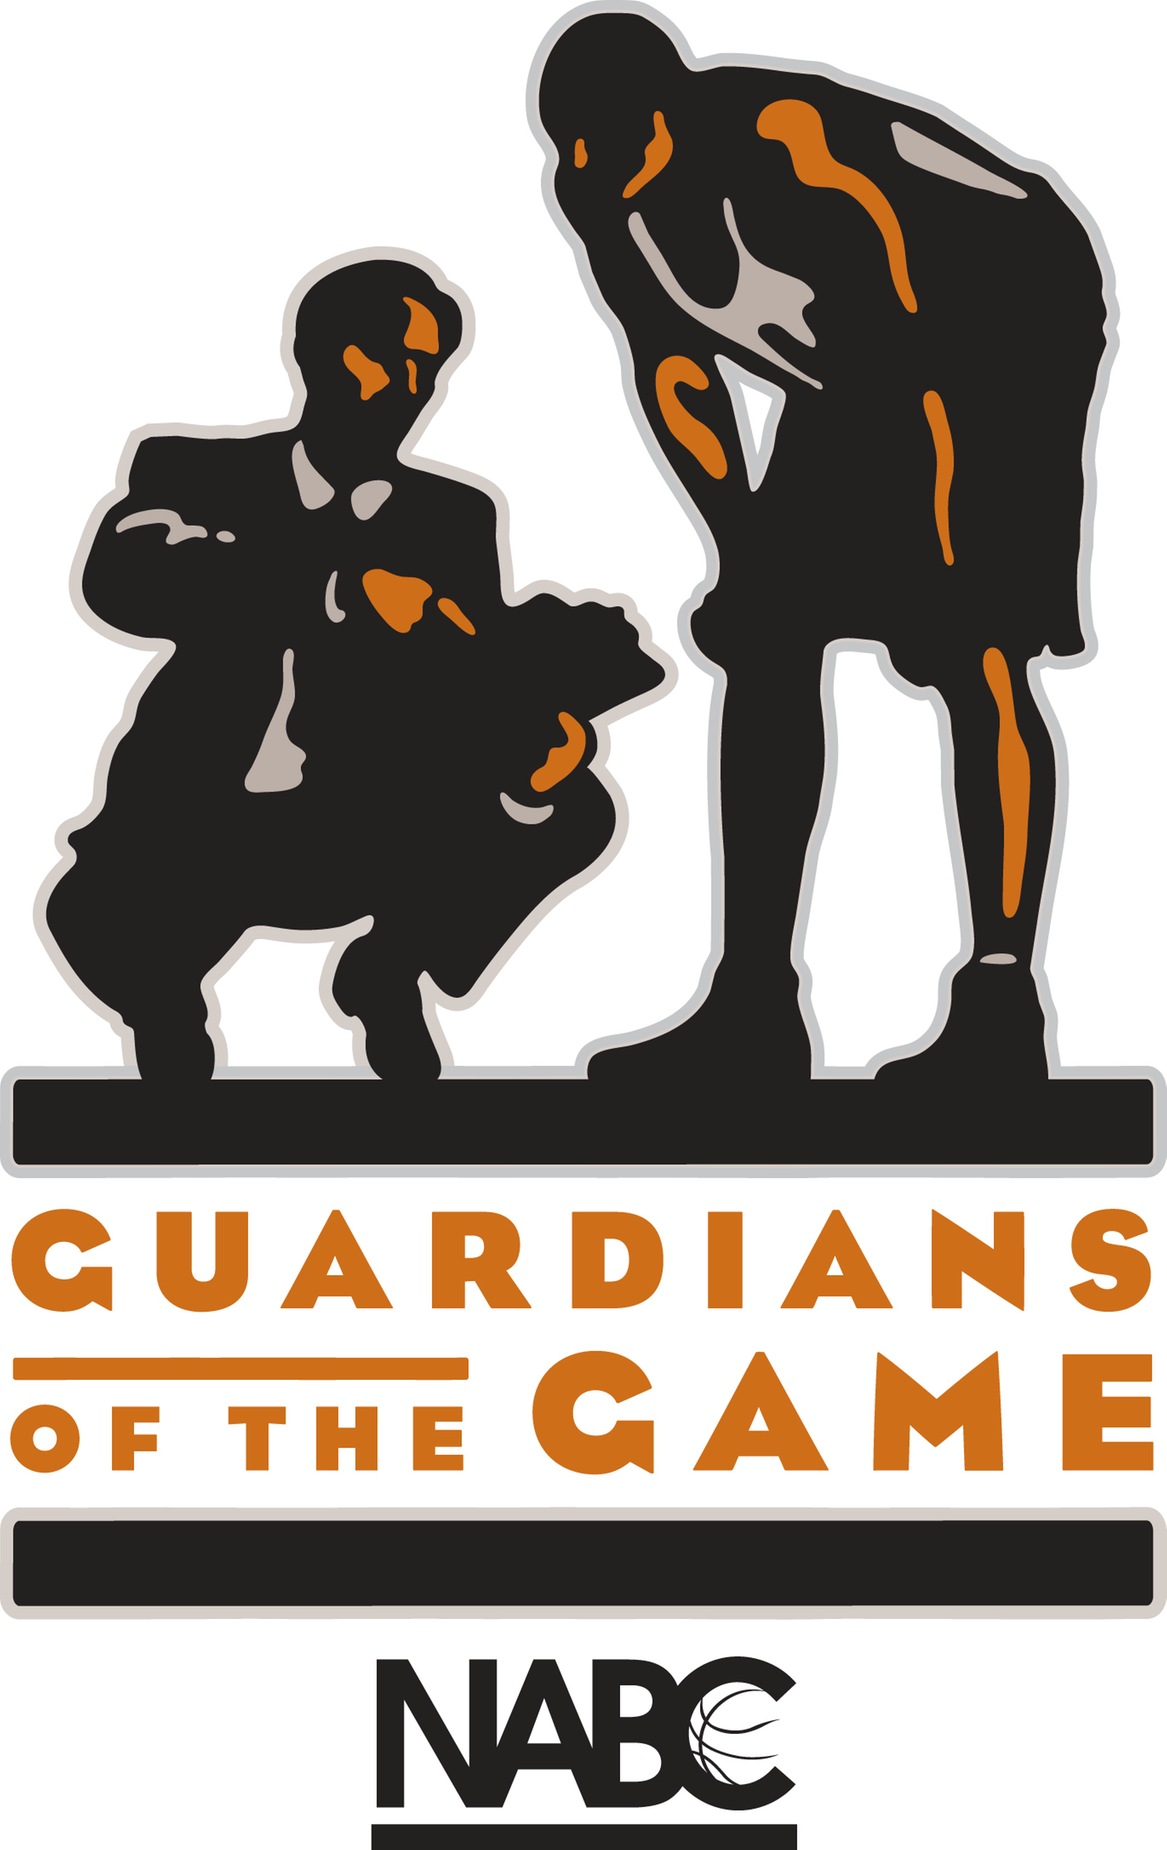 guardians-of-the-game